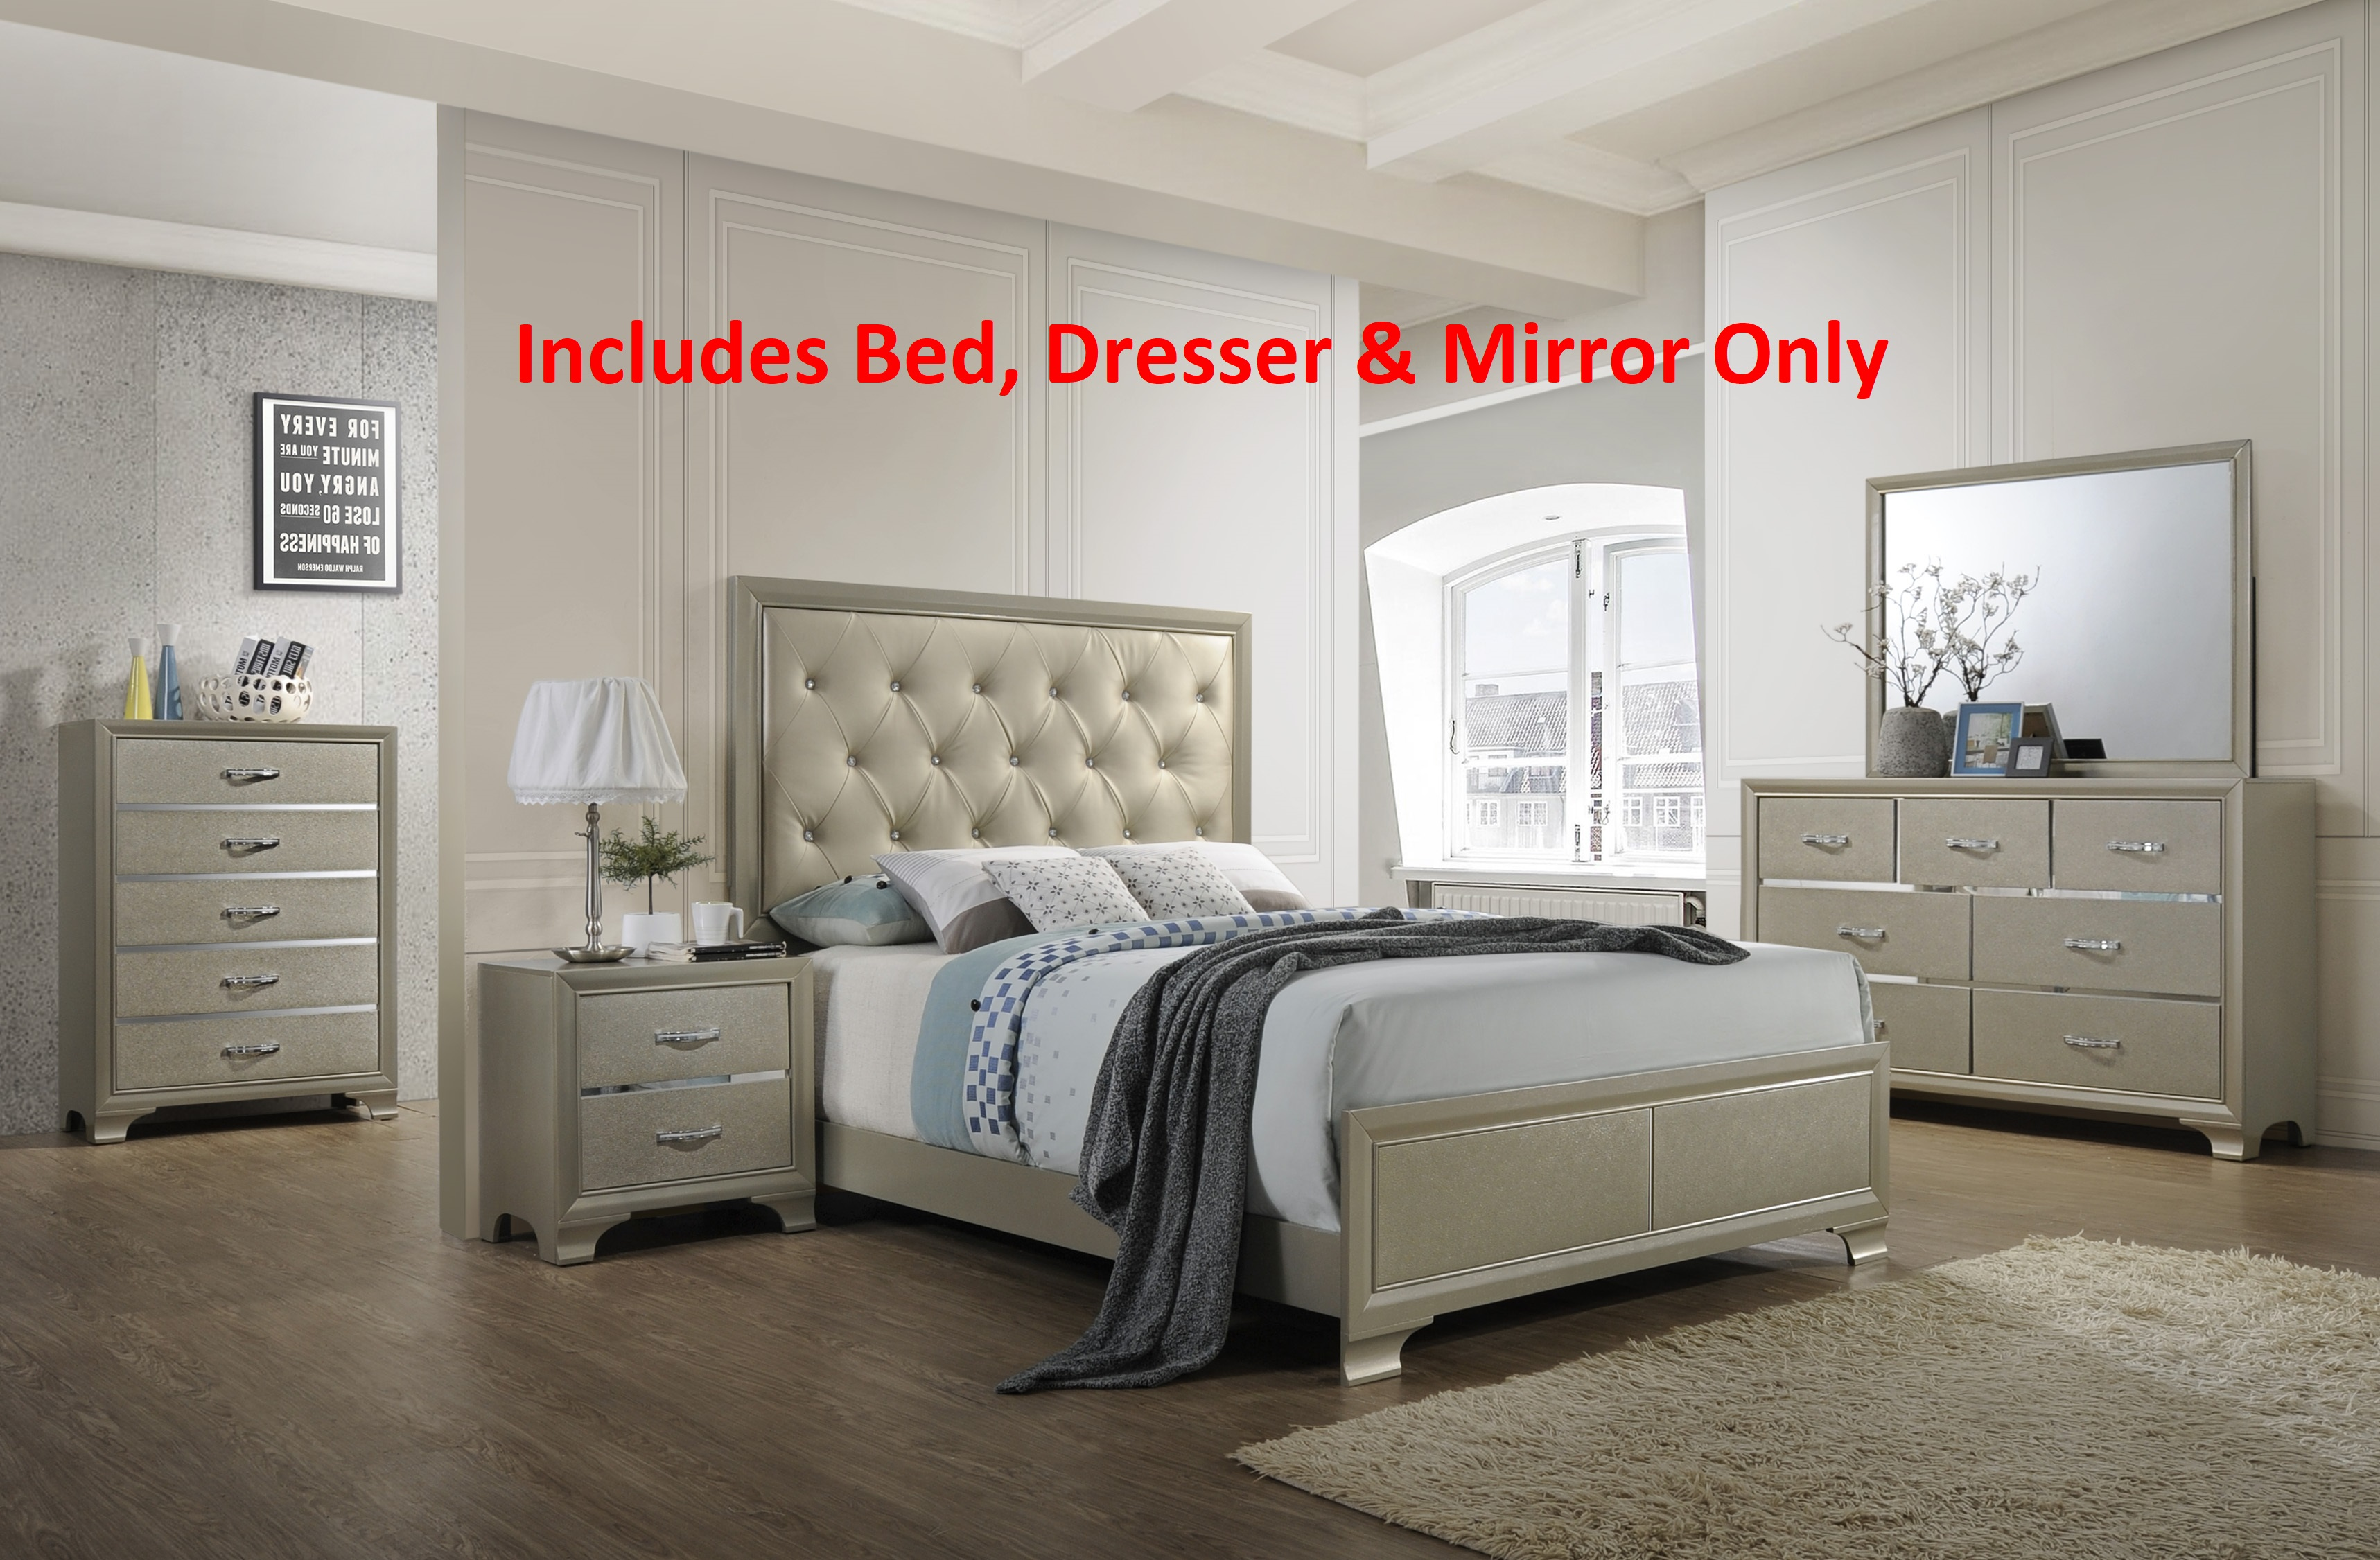 Delphine 3 Piece Queen Size Contemporary Champagne Wood With Upholstered  Tufted Faux Leather Headboard Panel Bedroom